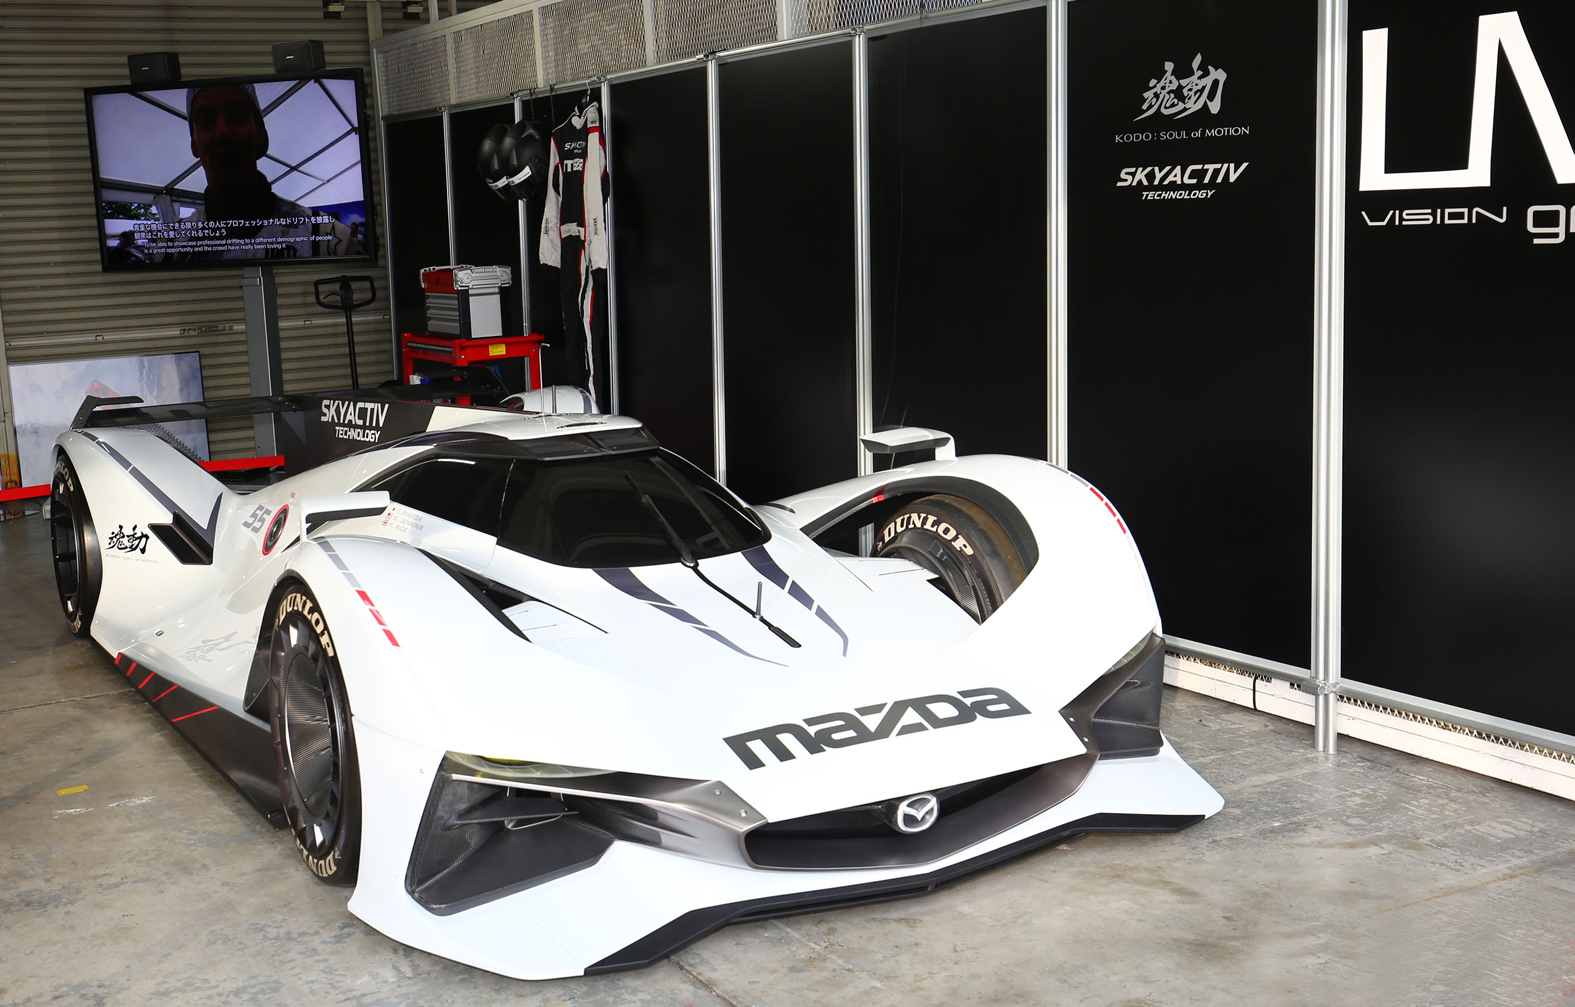 Mazda Has Announced That The Rotary Sports Concept, The U201cMazda RX VISIONu201d  And The Full Scale Model Virtual Sports Car, The U201cMazda LM55 Vision Gran  Turismou201d ...